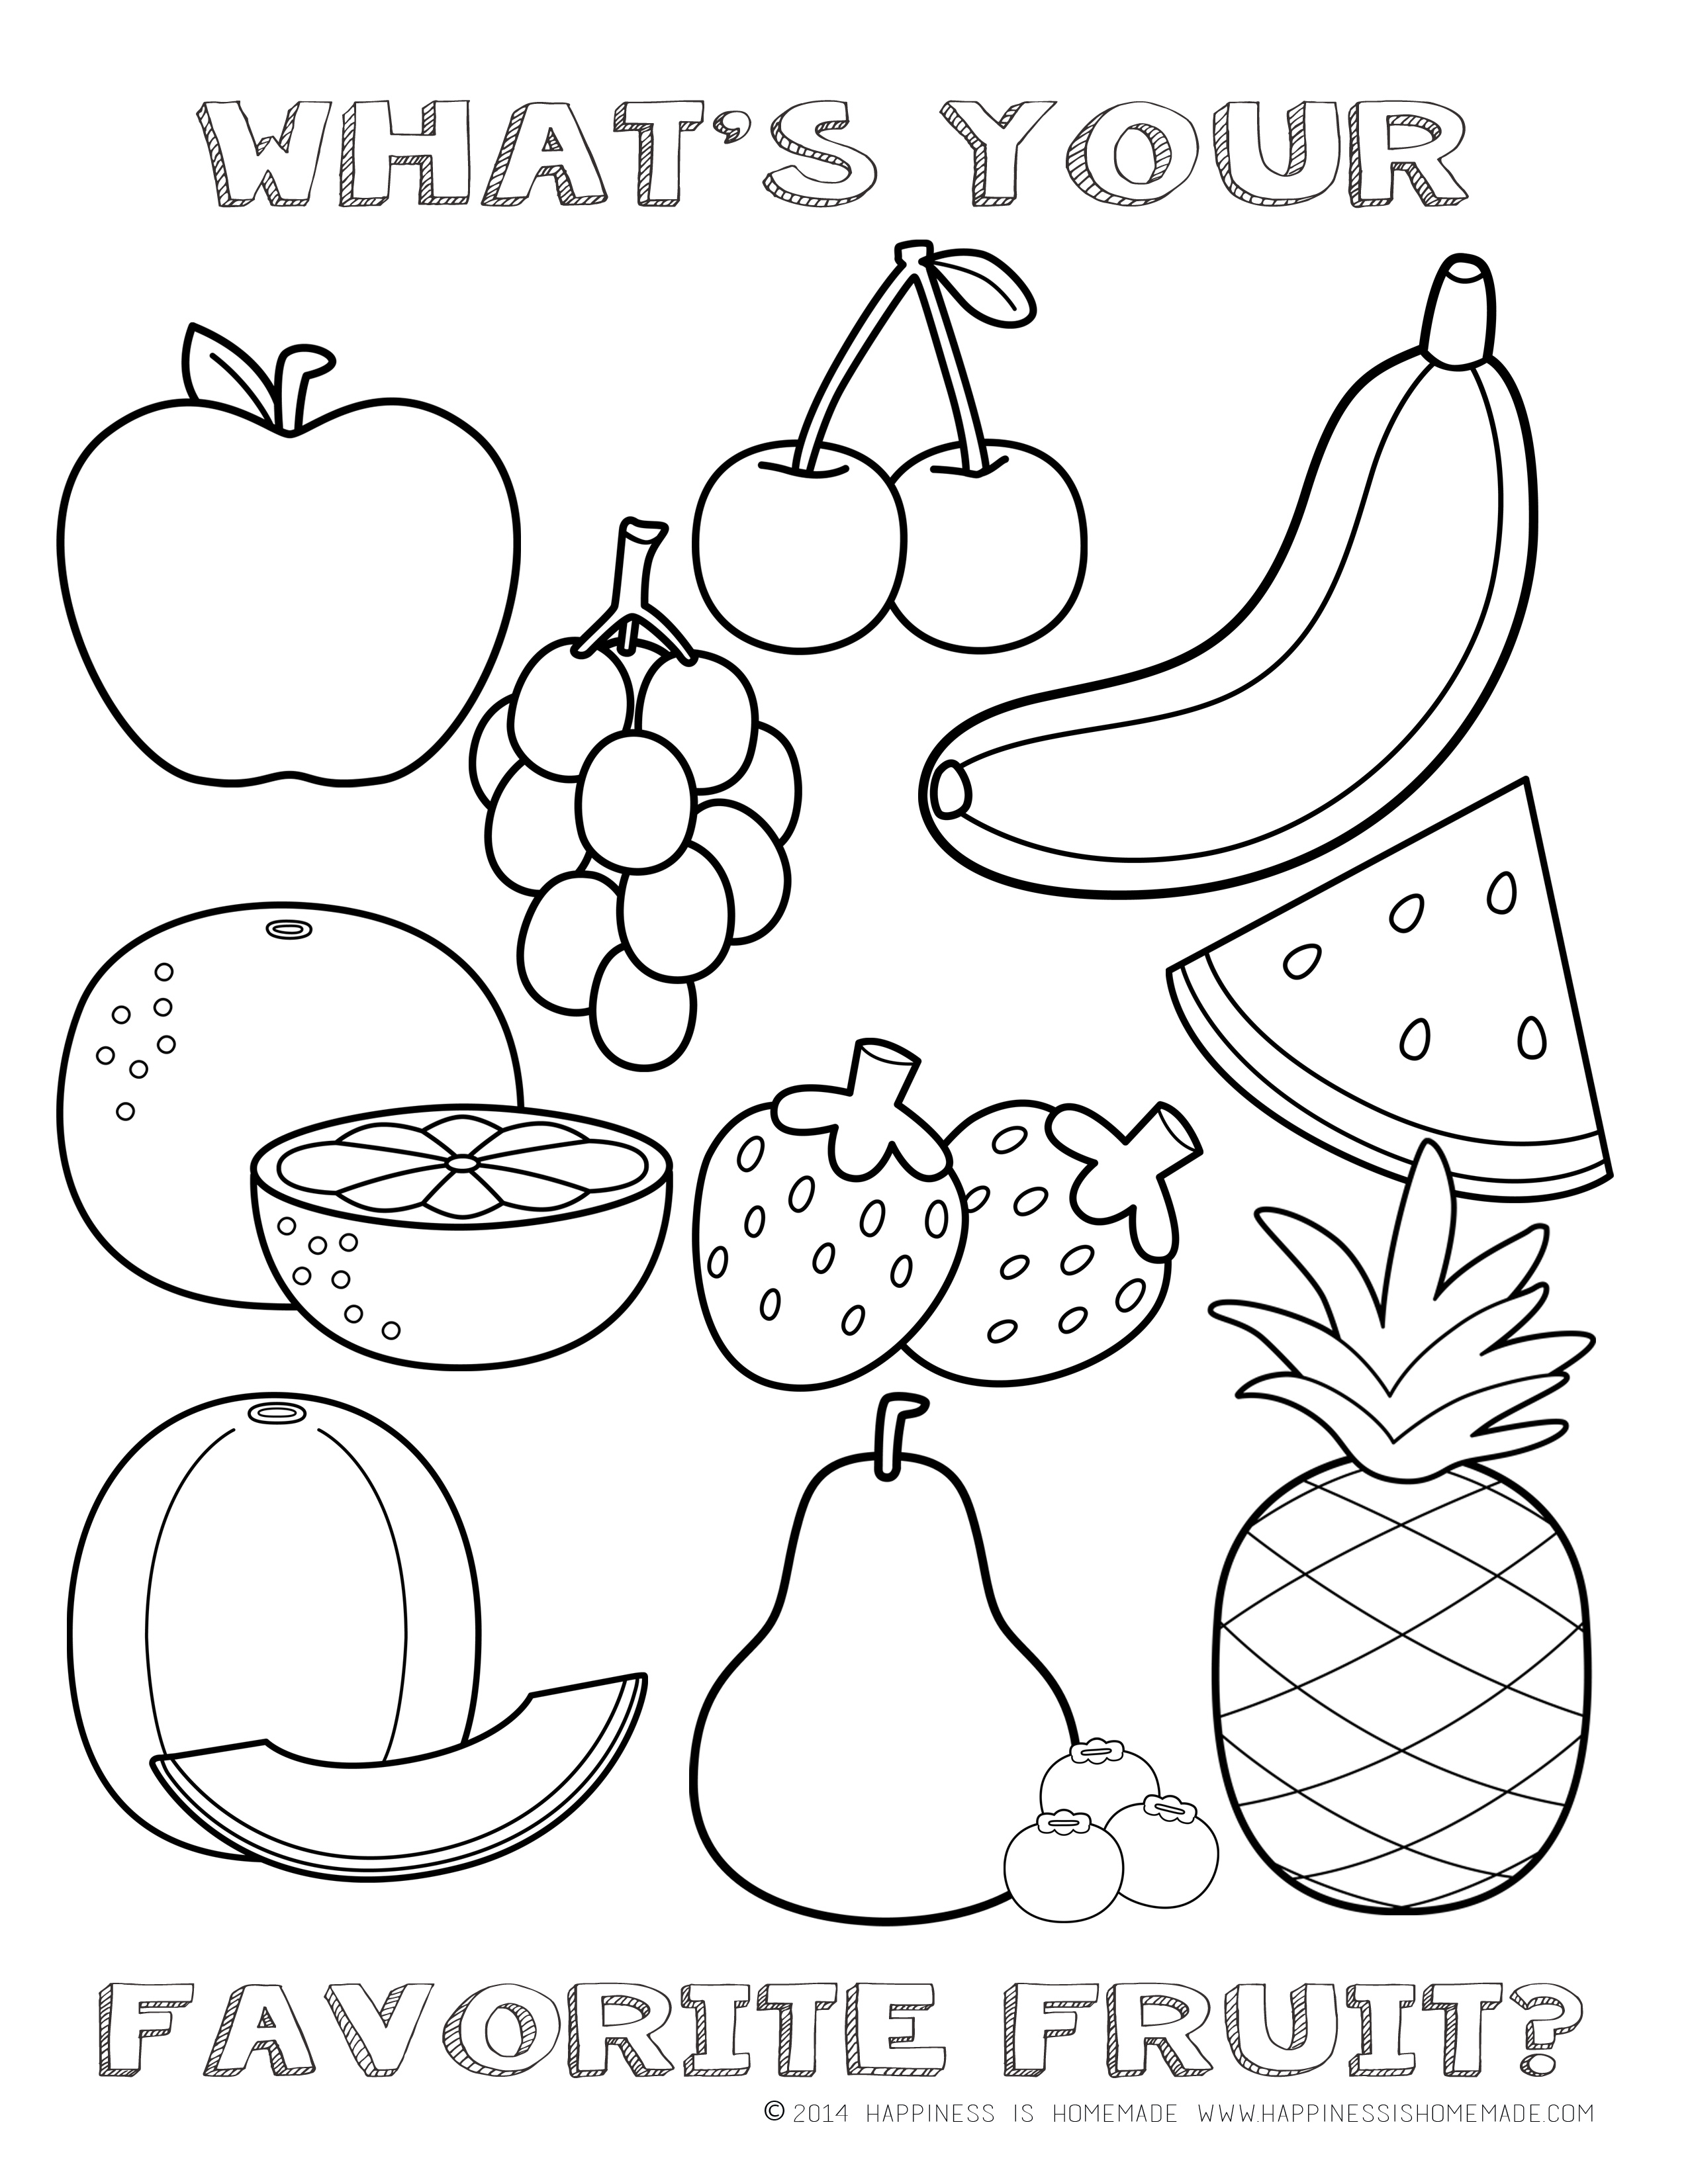 Fruit Salad Coloring Pages Download And Print For Free